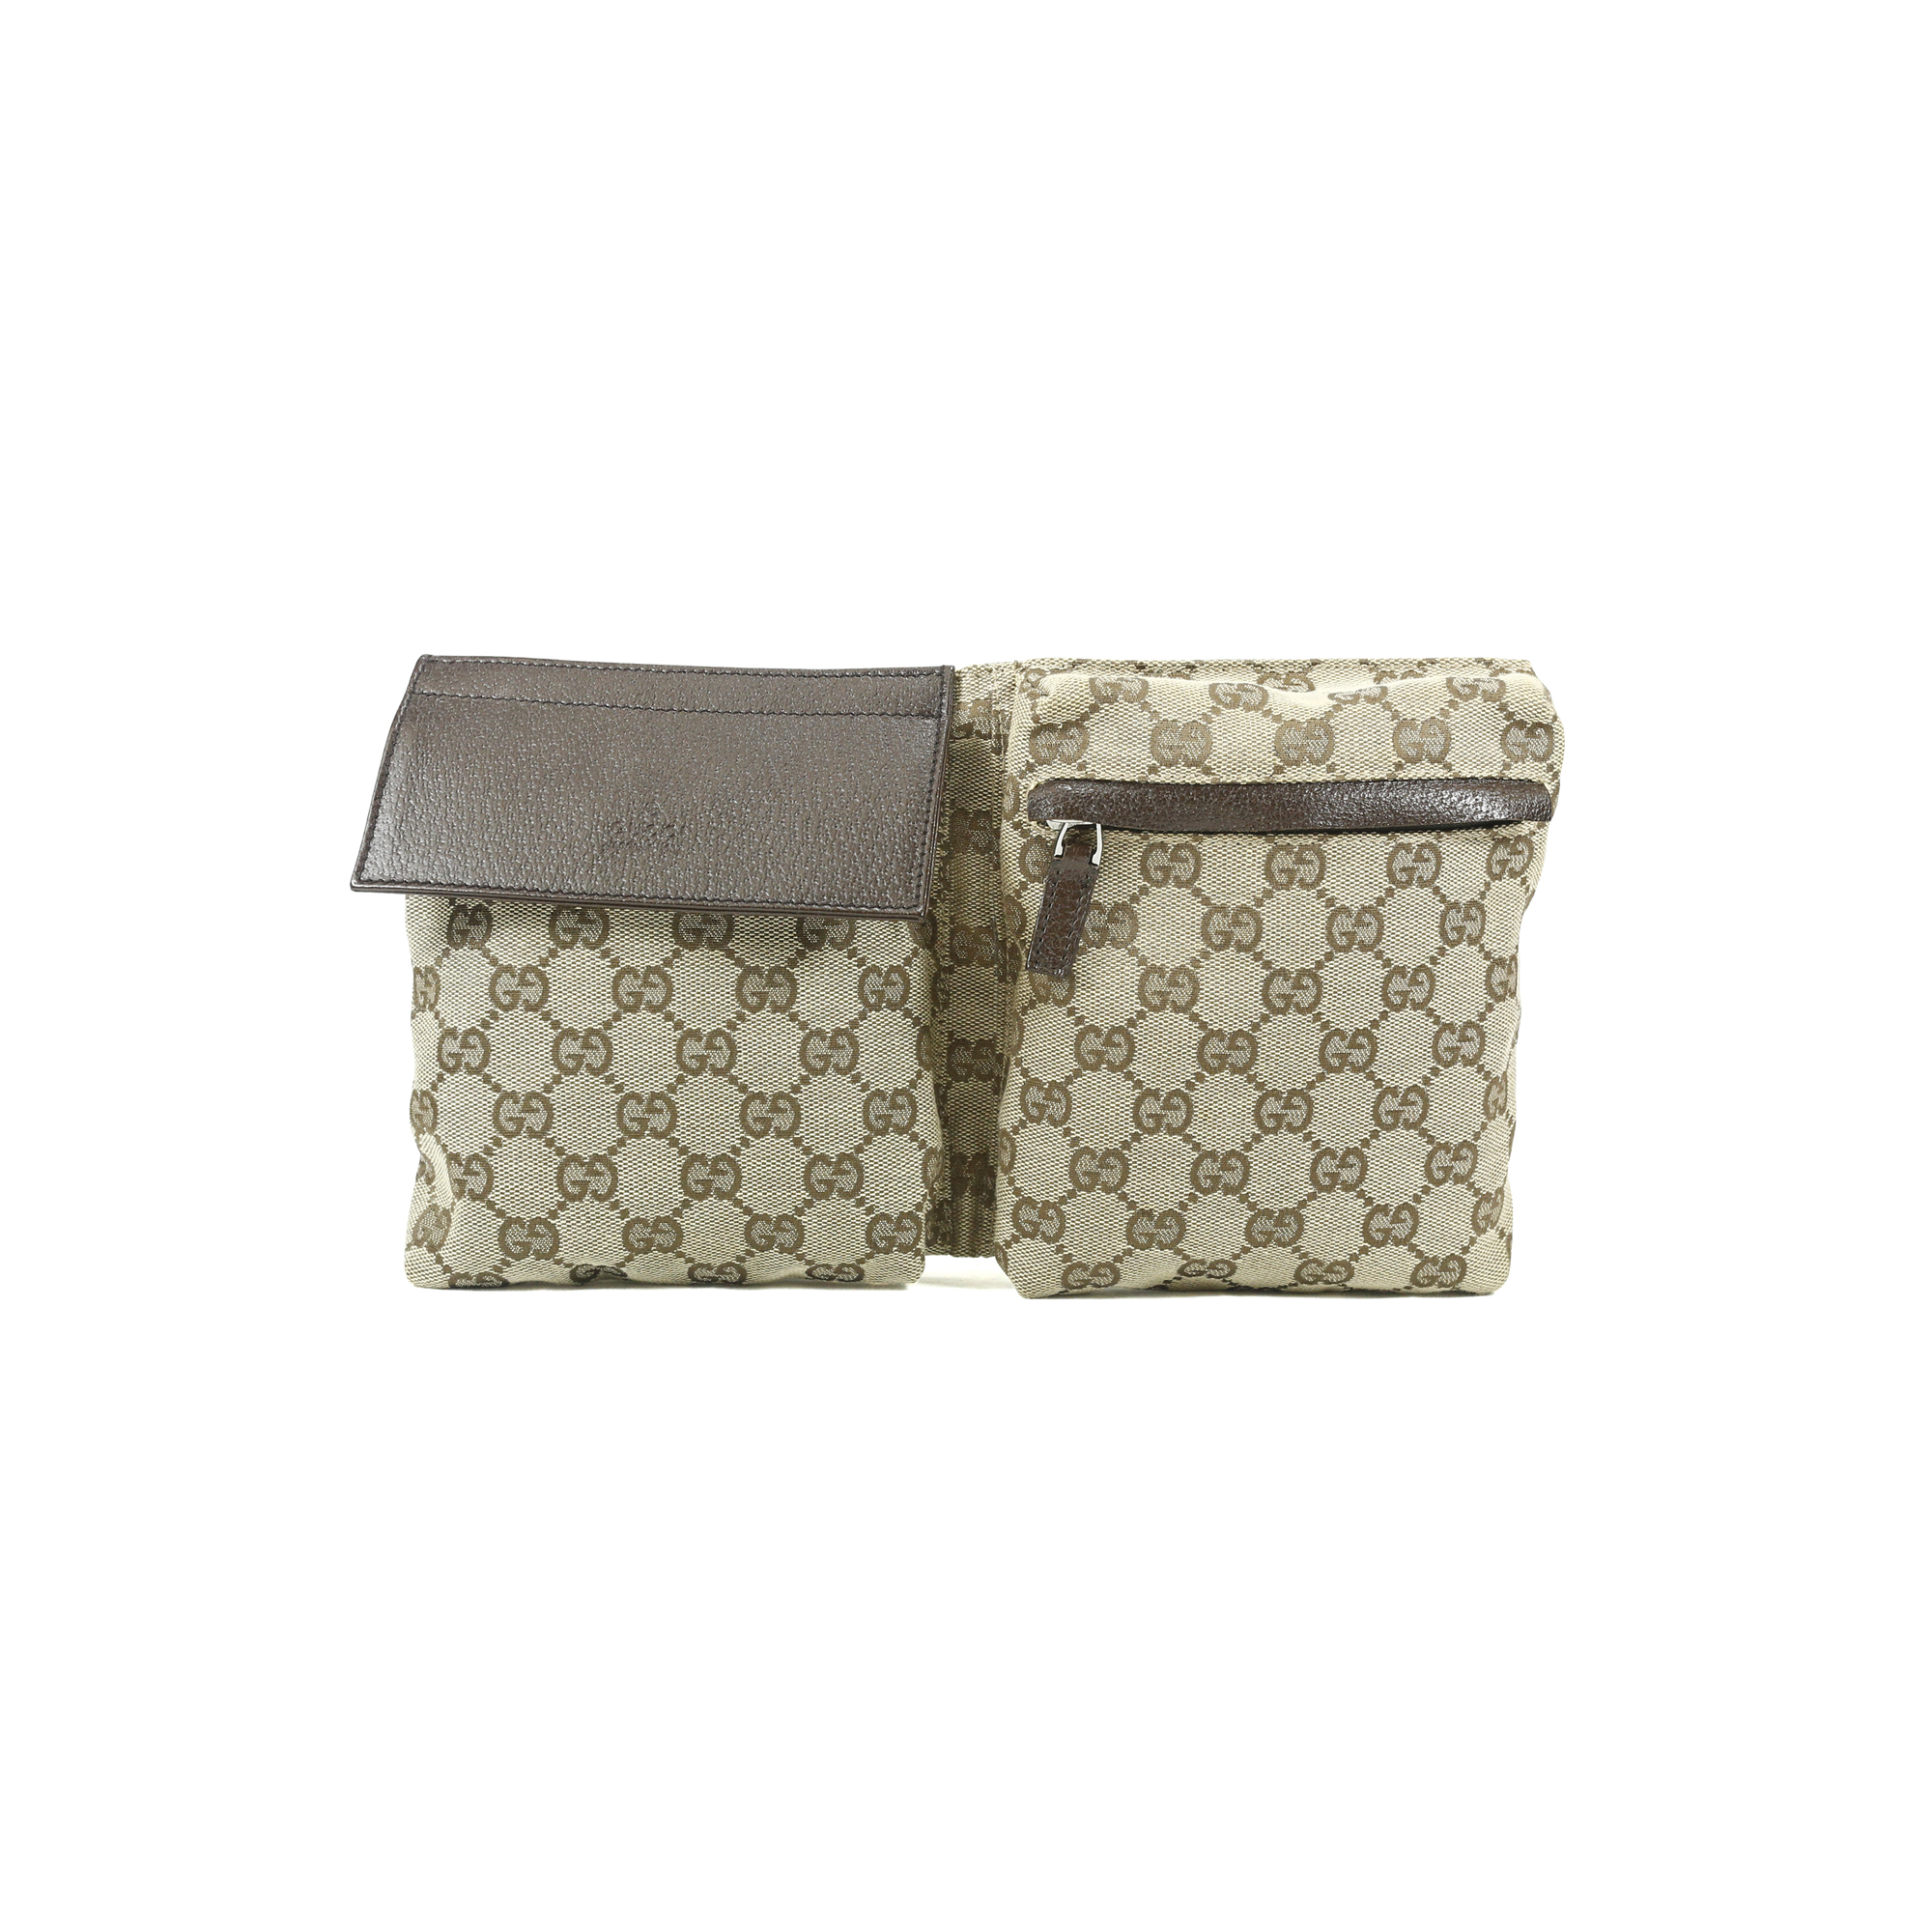 db45468fee1f1 Authentic Second Hand Gucci Monogram Belt Bag (PSS-004-00072)